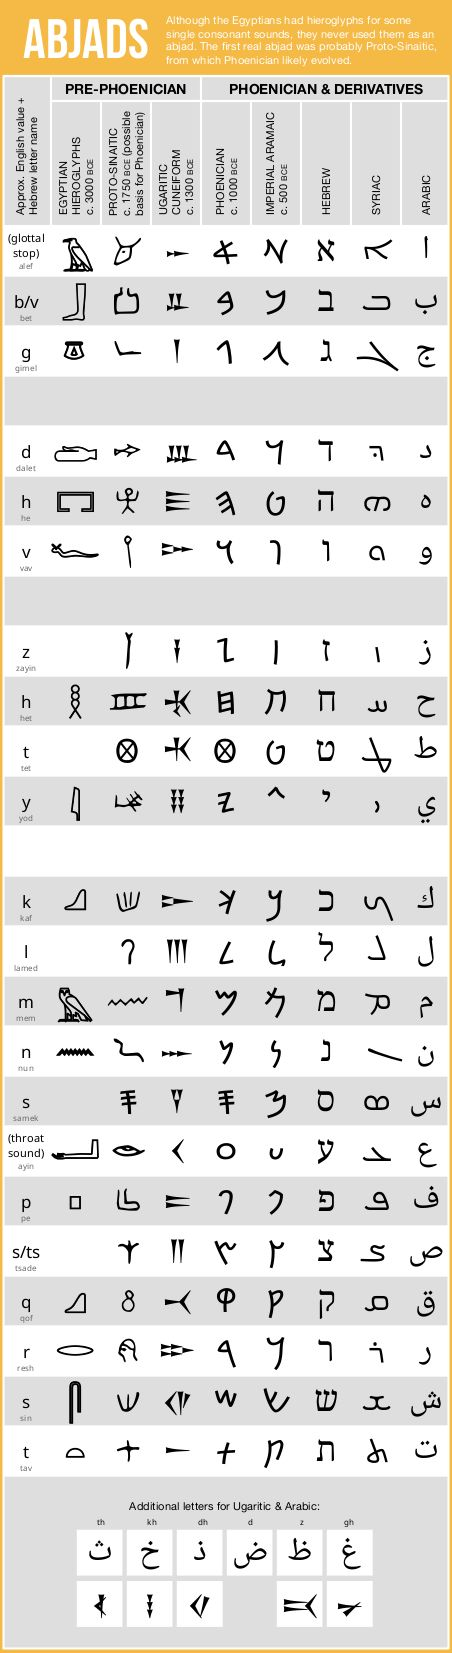 The  Best Ancient Hebrew Alphabet Ideas On   Bible In